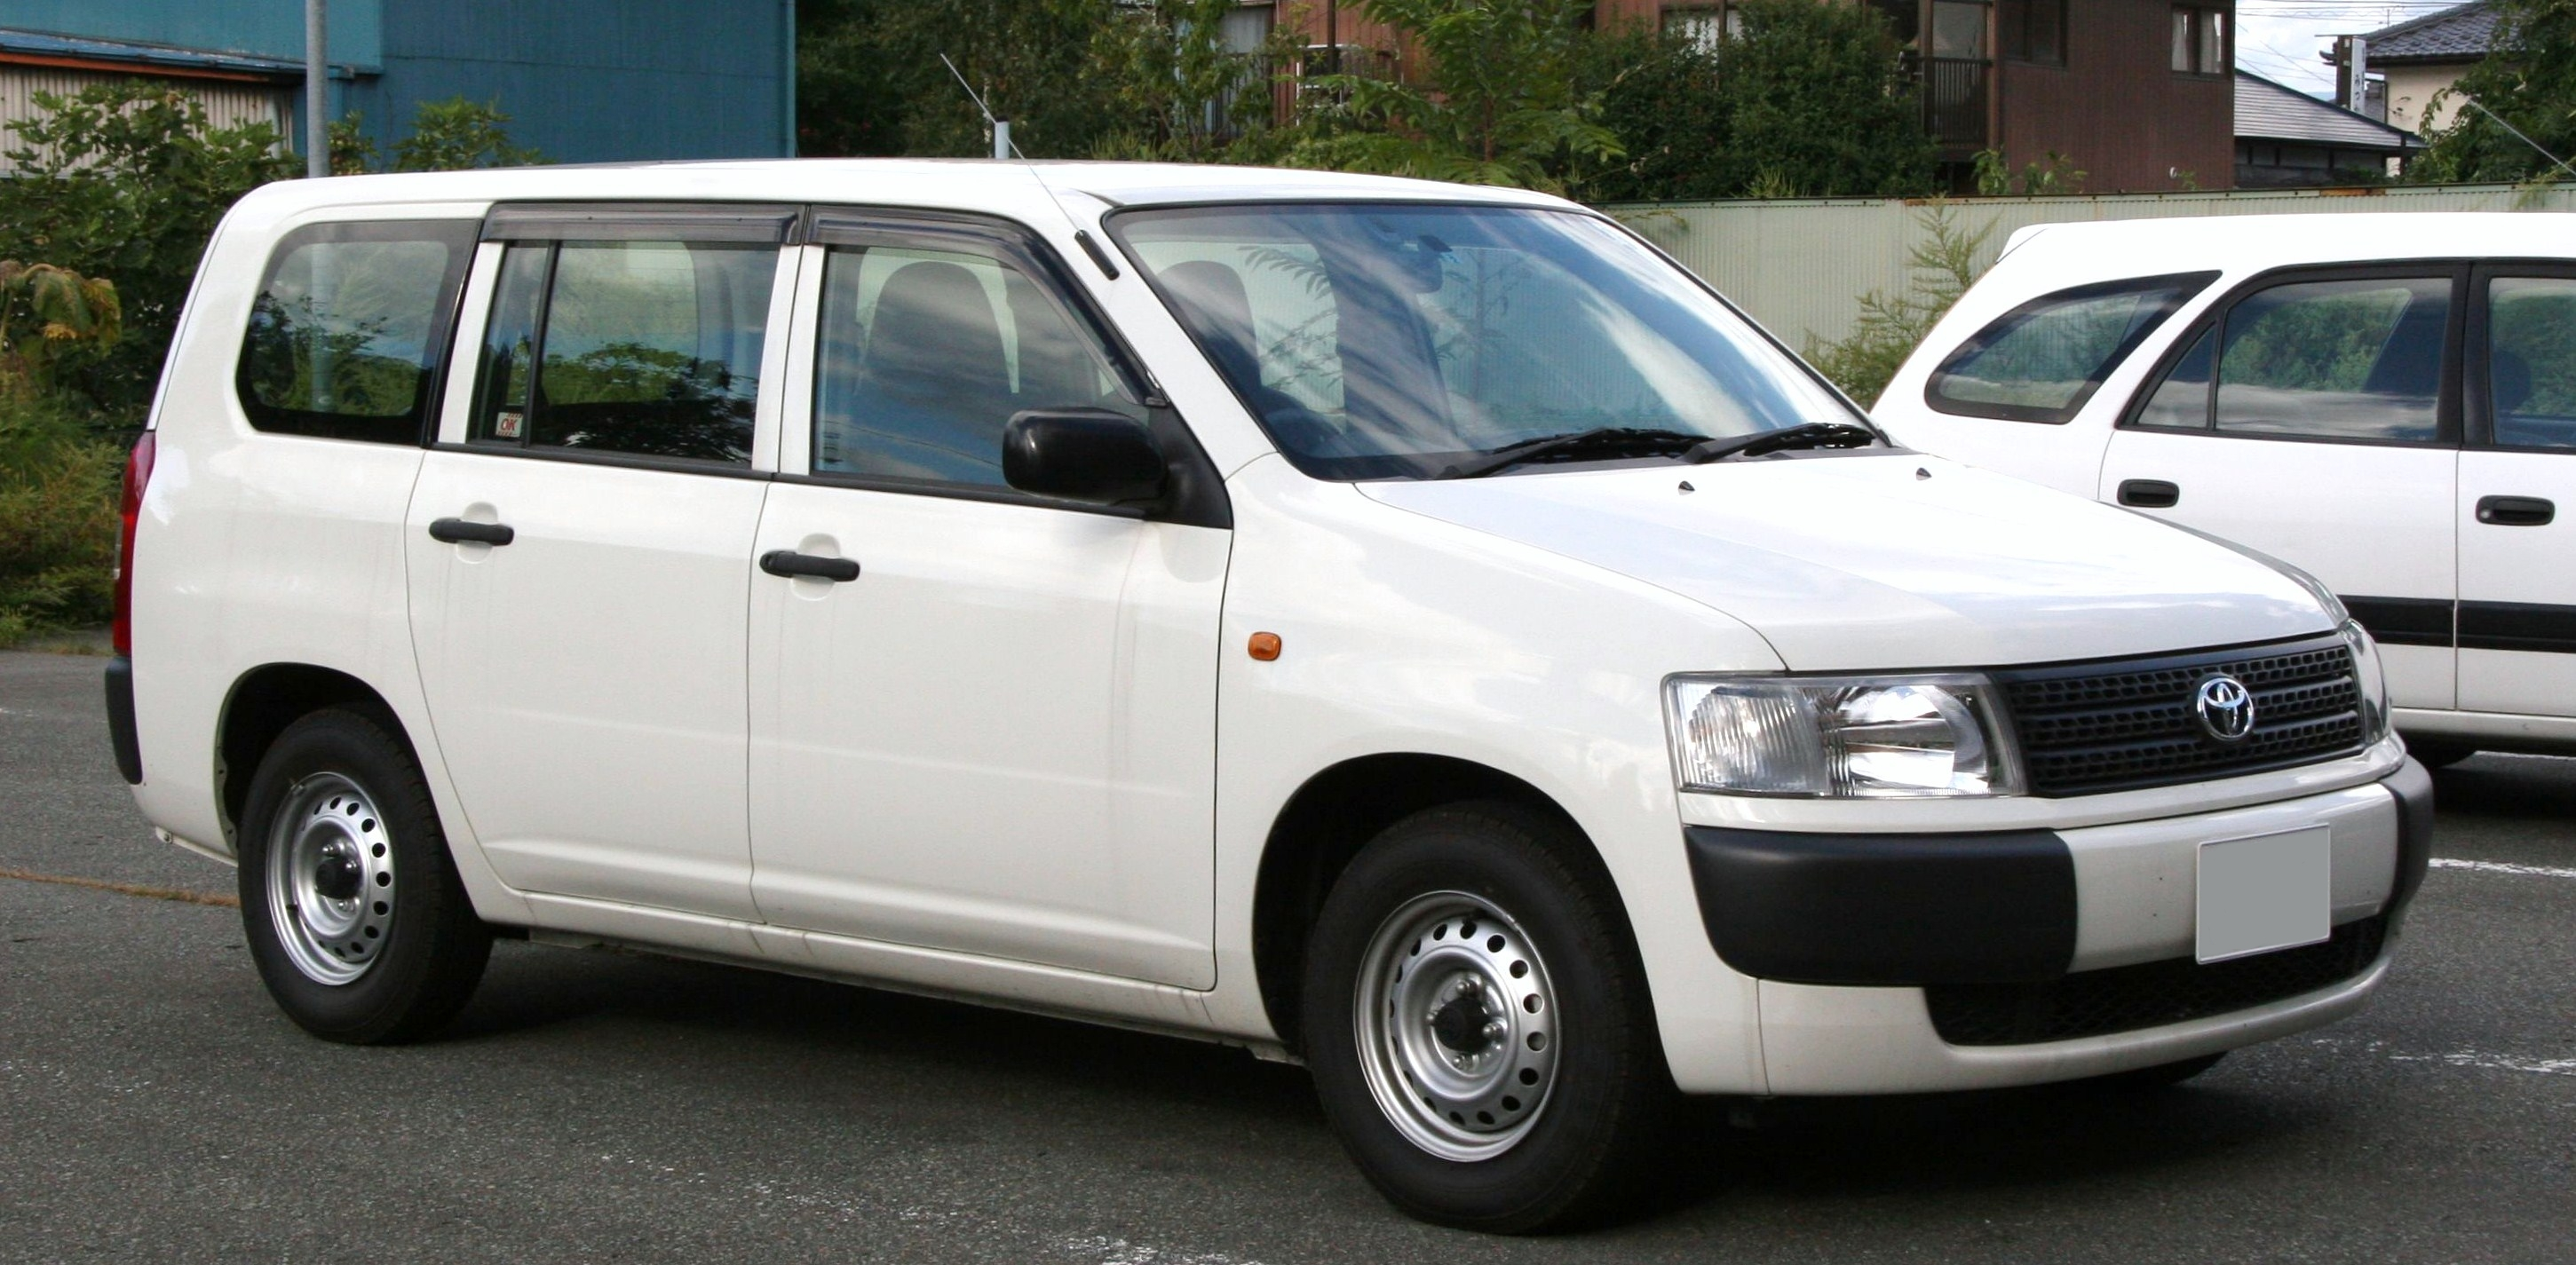 Toyota Probox  Exterior Side View